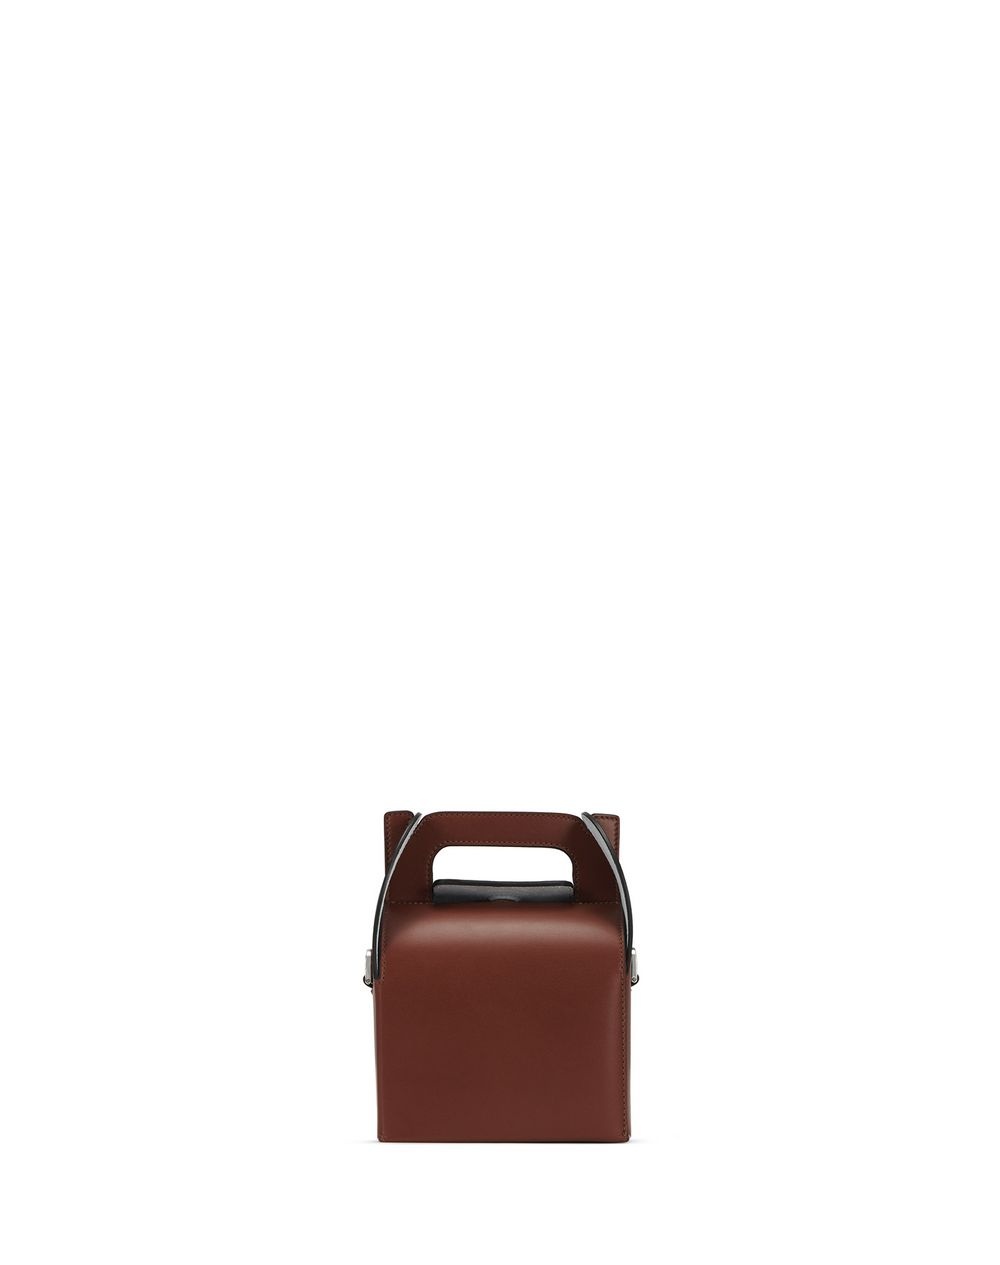 HAPPY BOX IN CALFSKIN LEATHER - Lanvin